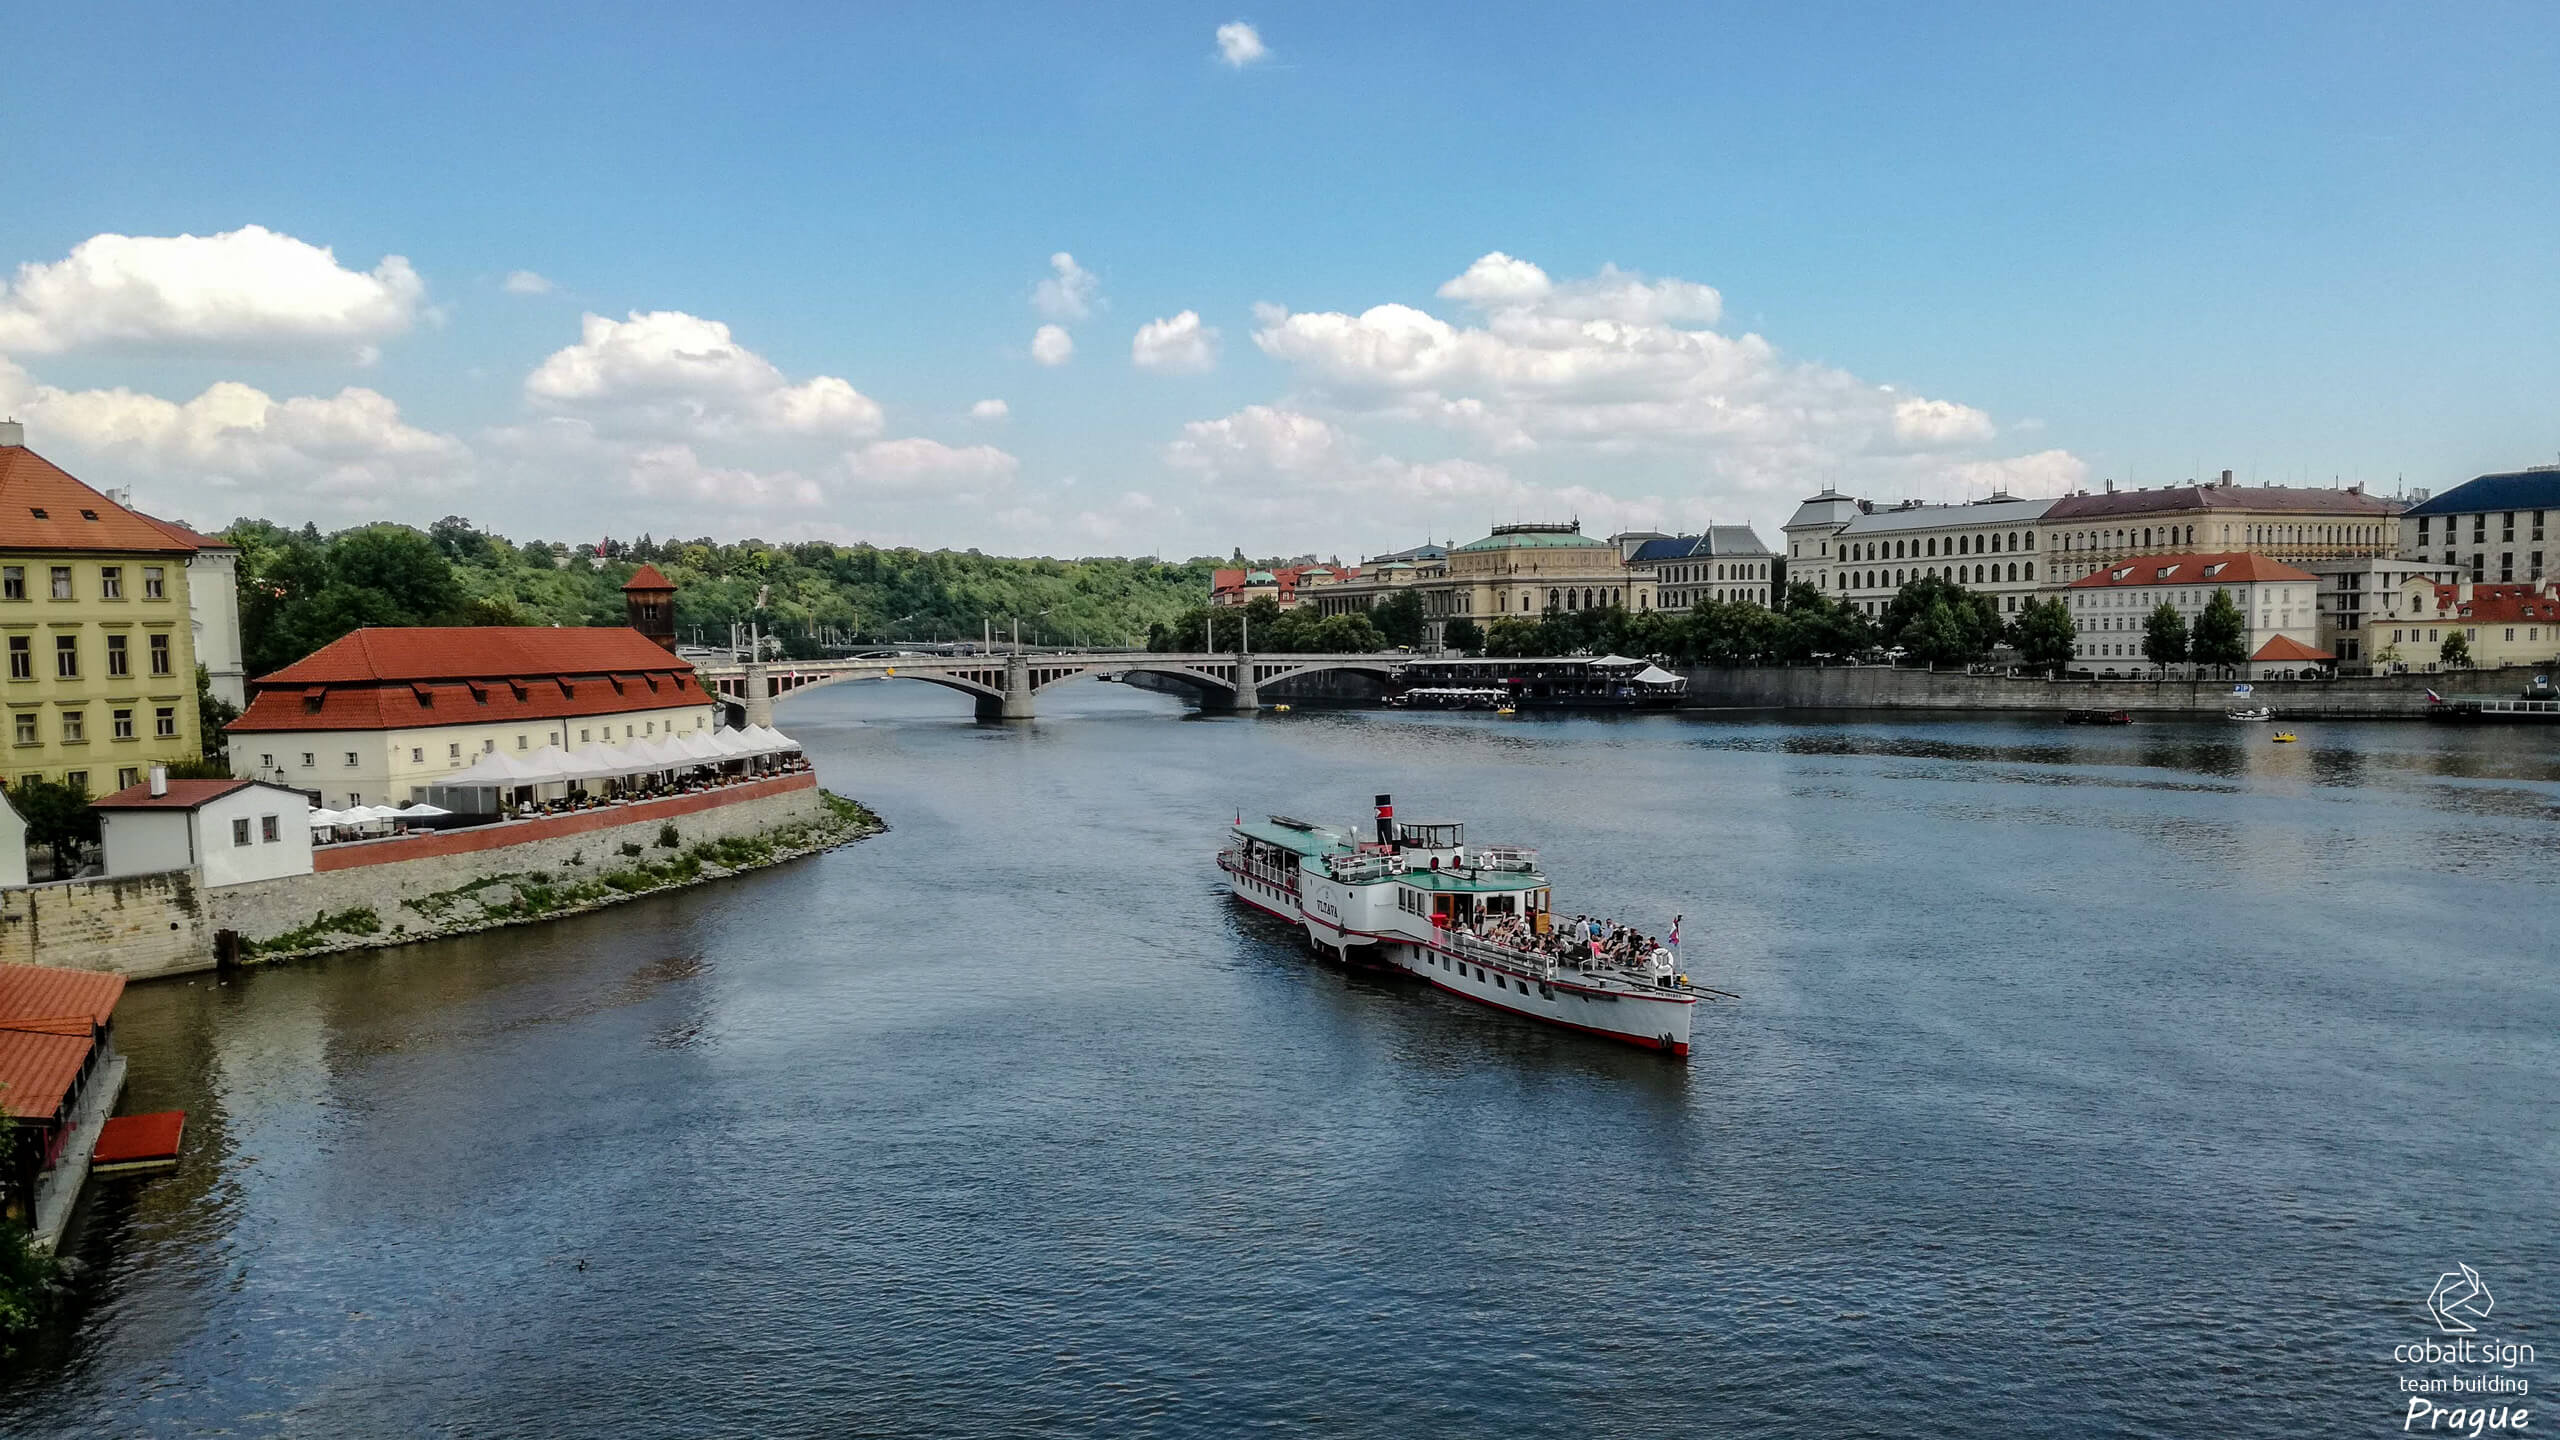 Team Building 2018 – City break in Prague